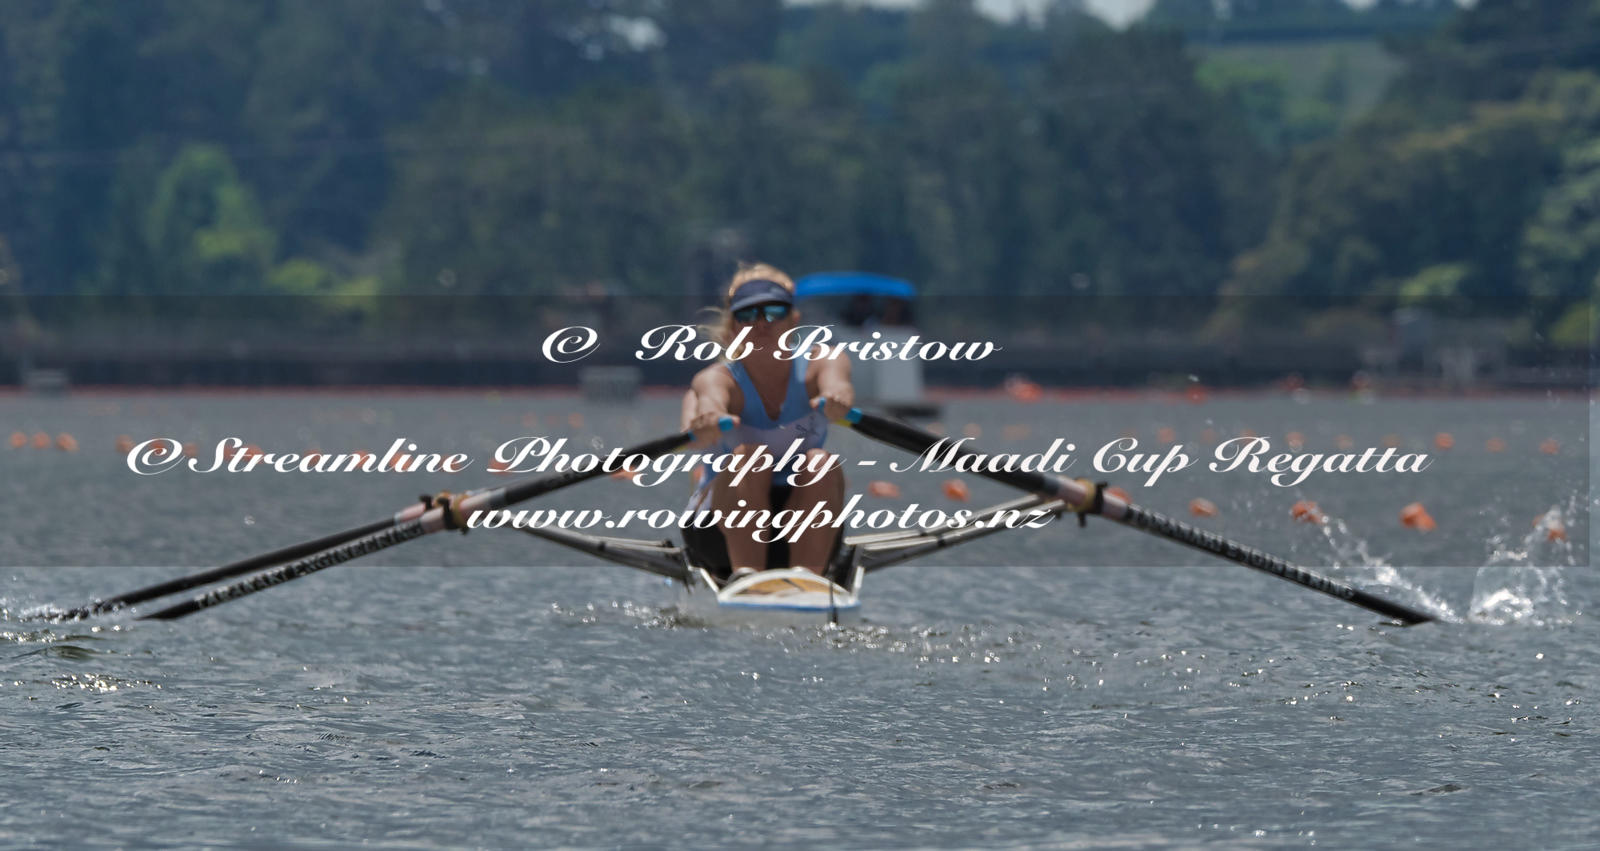 Taken during the Karapiro Xmas Regatta  2018, Lake Karapiro, Cambridge, New Zealand; ©  Rob Bristow; Taken on: Saturday - 15/12/2018-  at 14:22.24